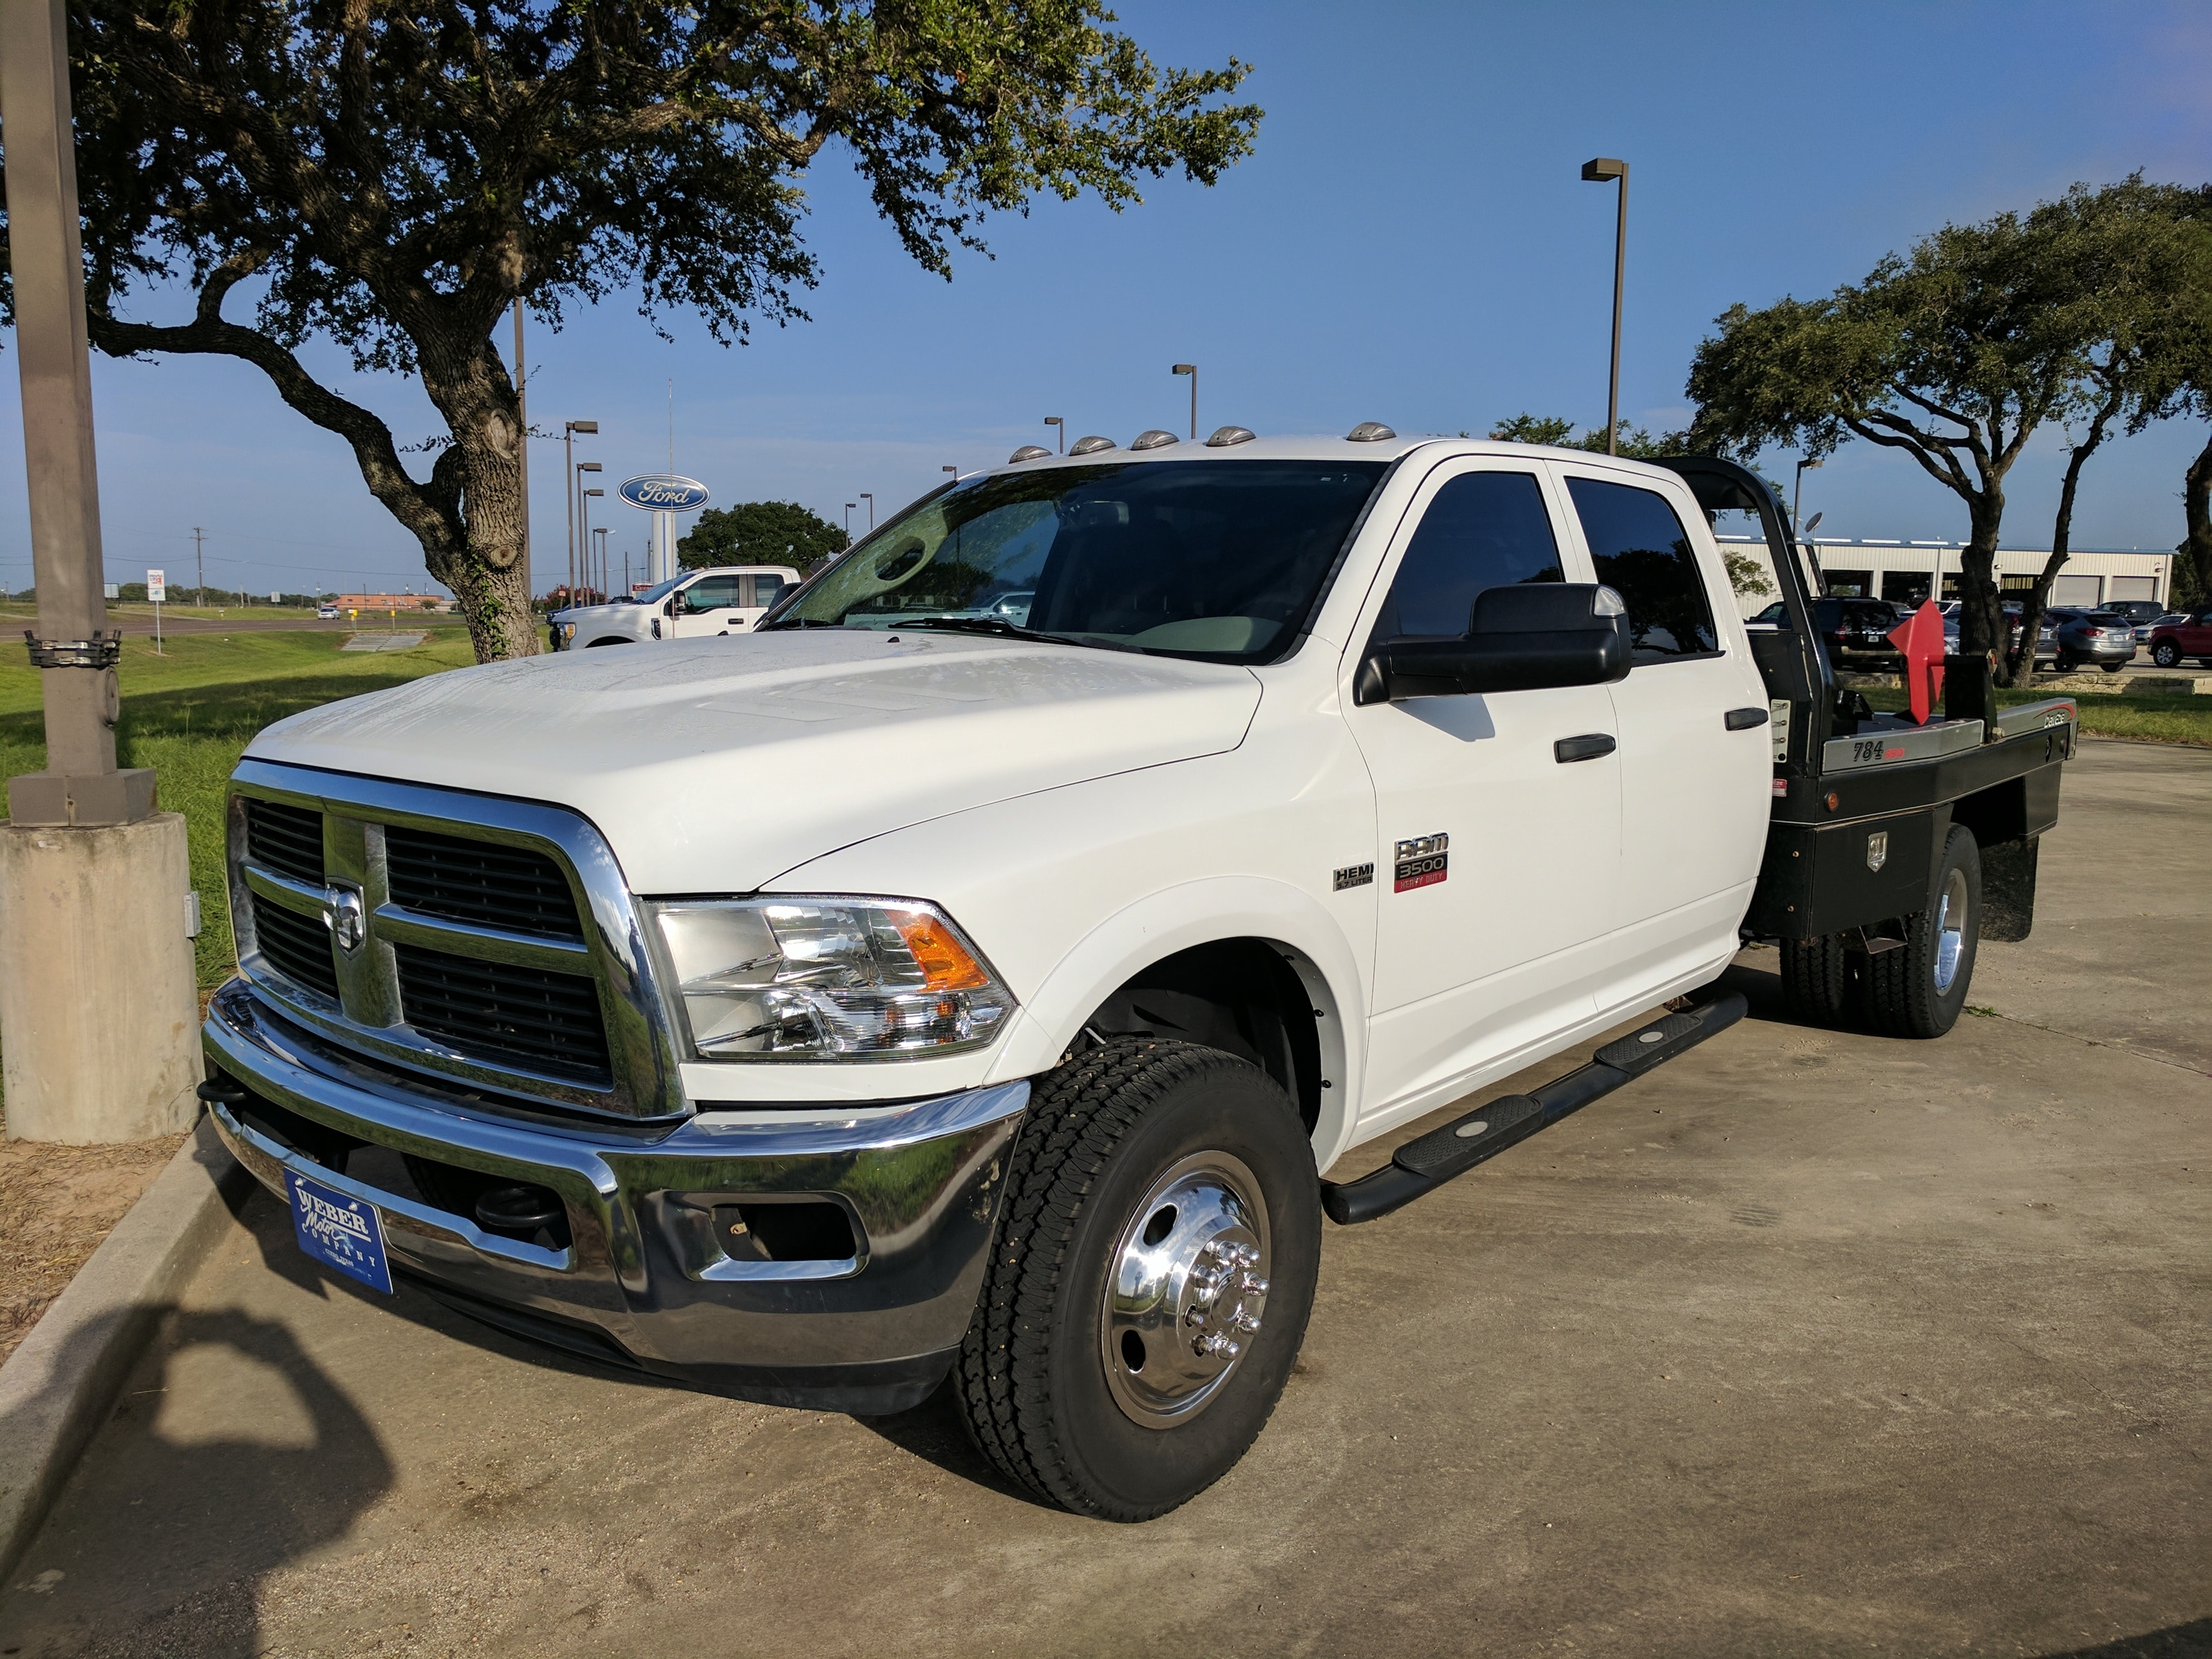 2012 Ram 3500 Chassis ST 4x4 Crew 172.4in Truck Crew Cab